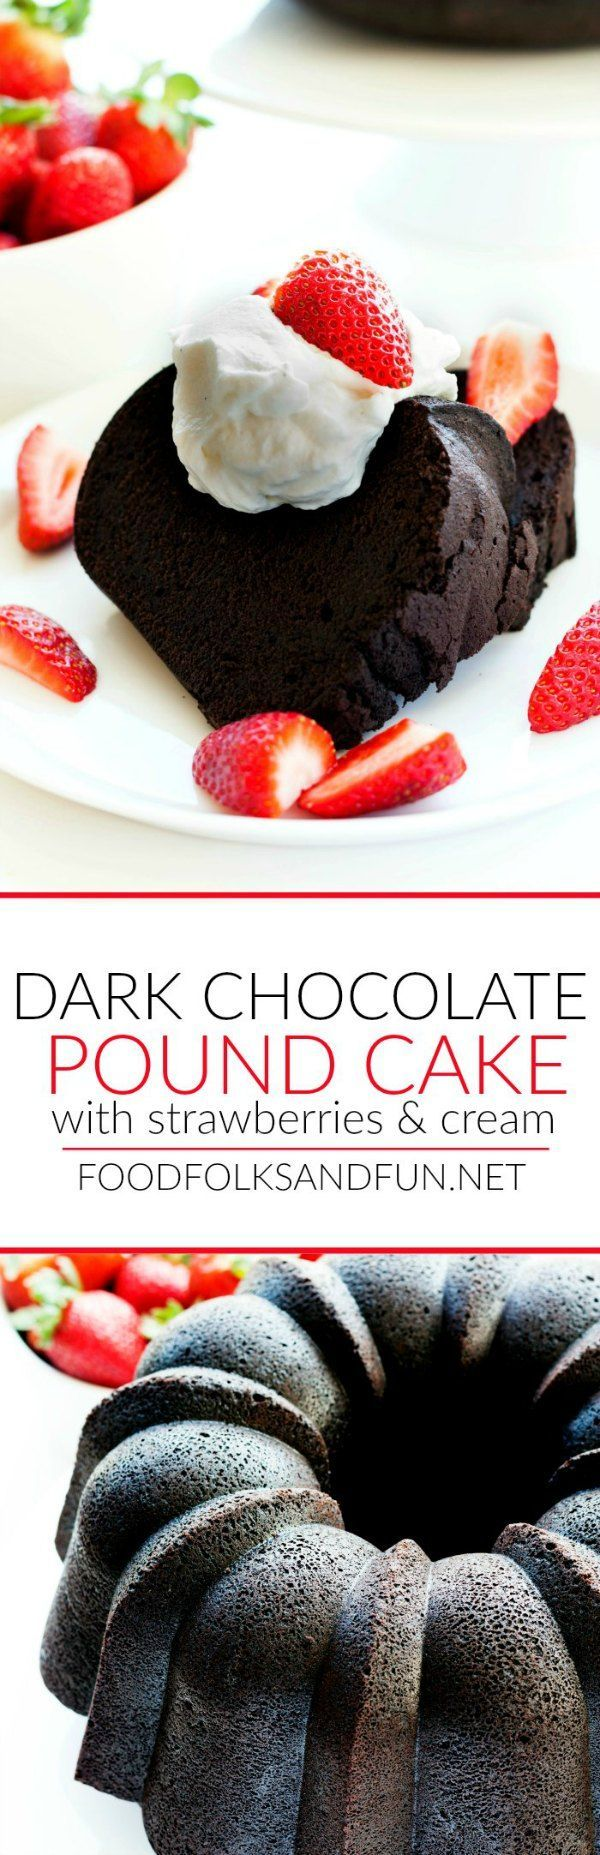 This recipe for Dark Chocolate Pound Cake with Strawberries and Cream uses tree popular Valentine's Day ingredients: chocolate, strawberries, and cream! #ad #savetimetips